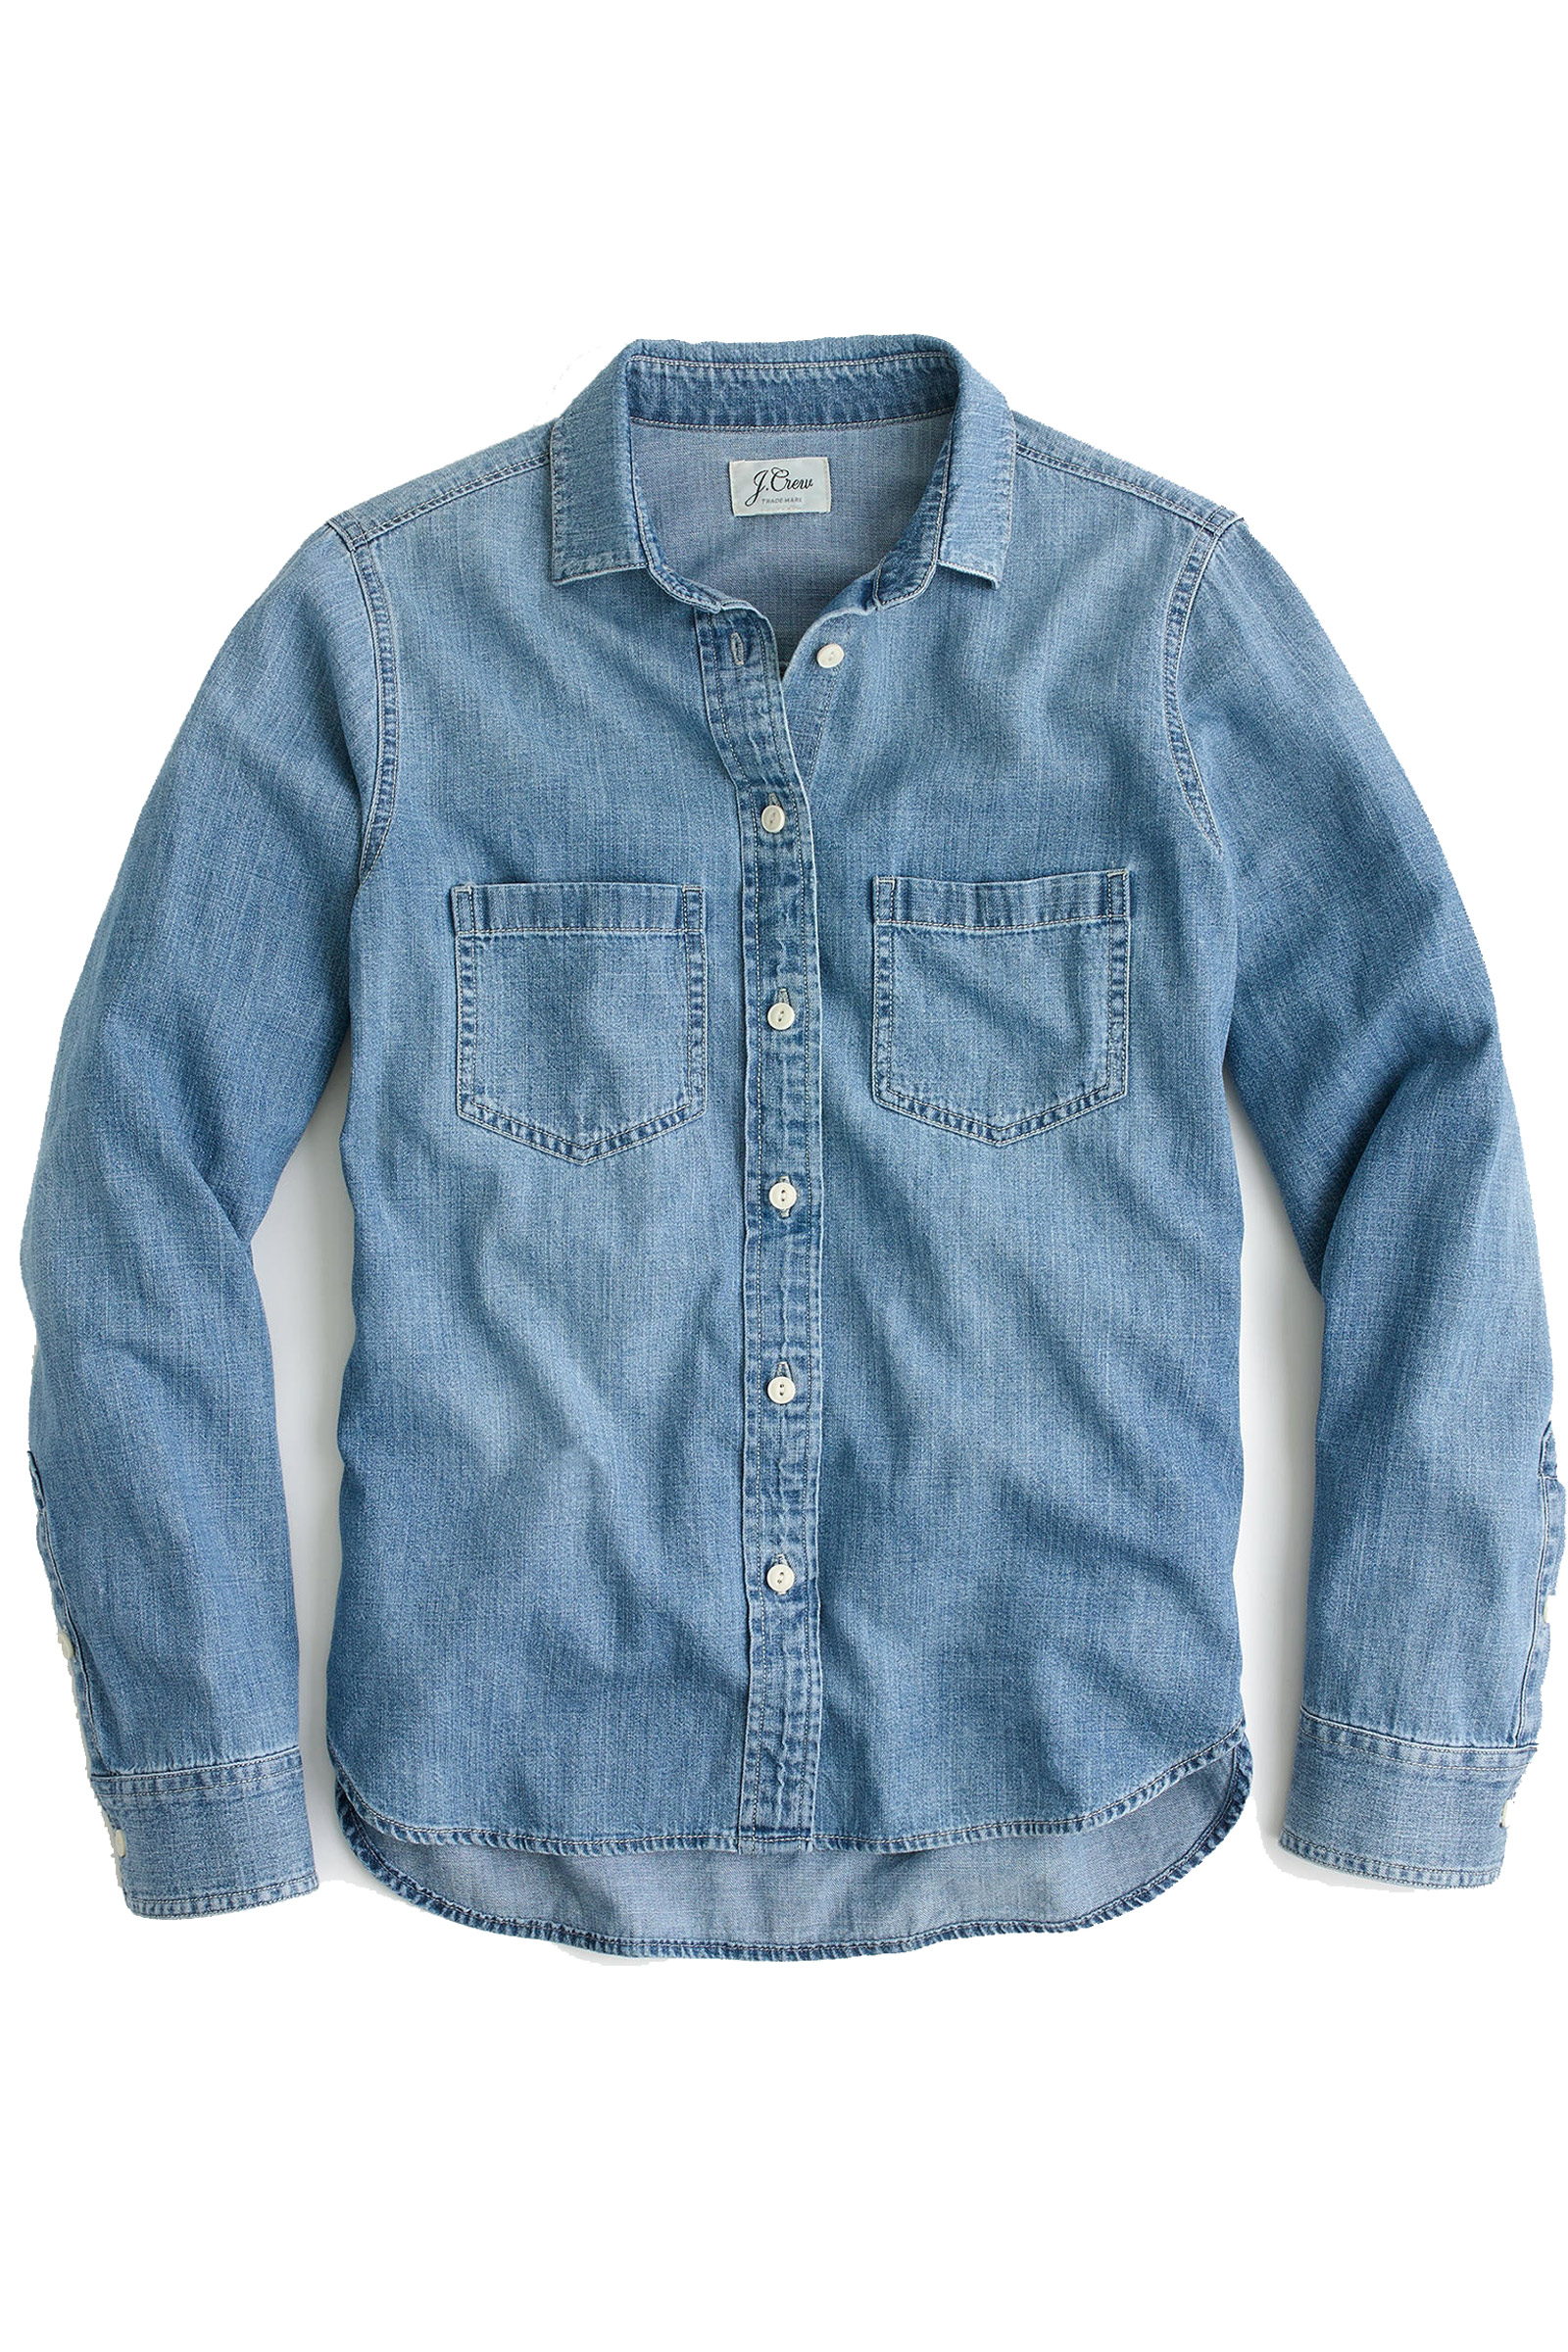 Click to Buy J. Crew Chambray Shirt Online